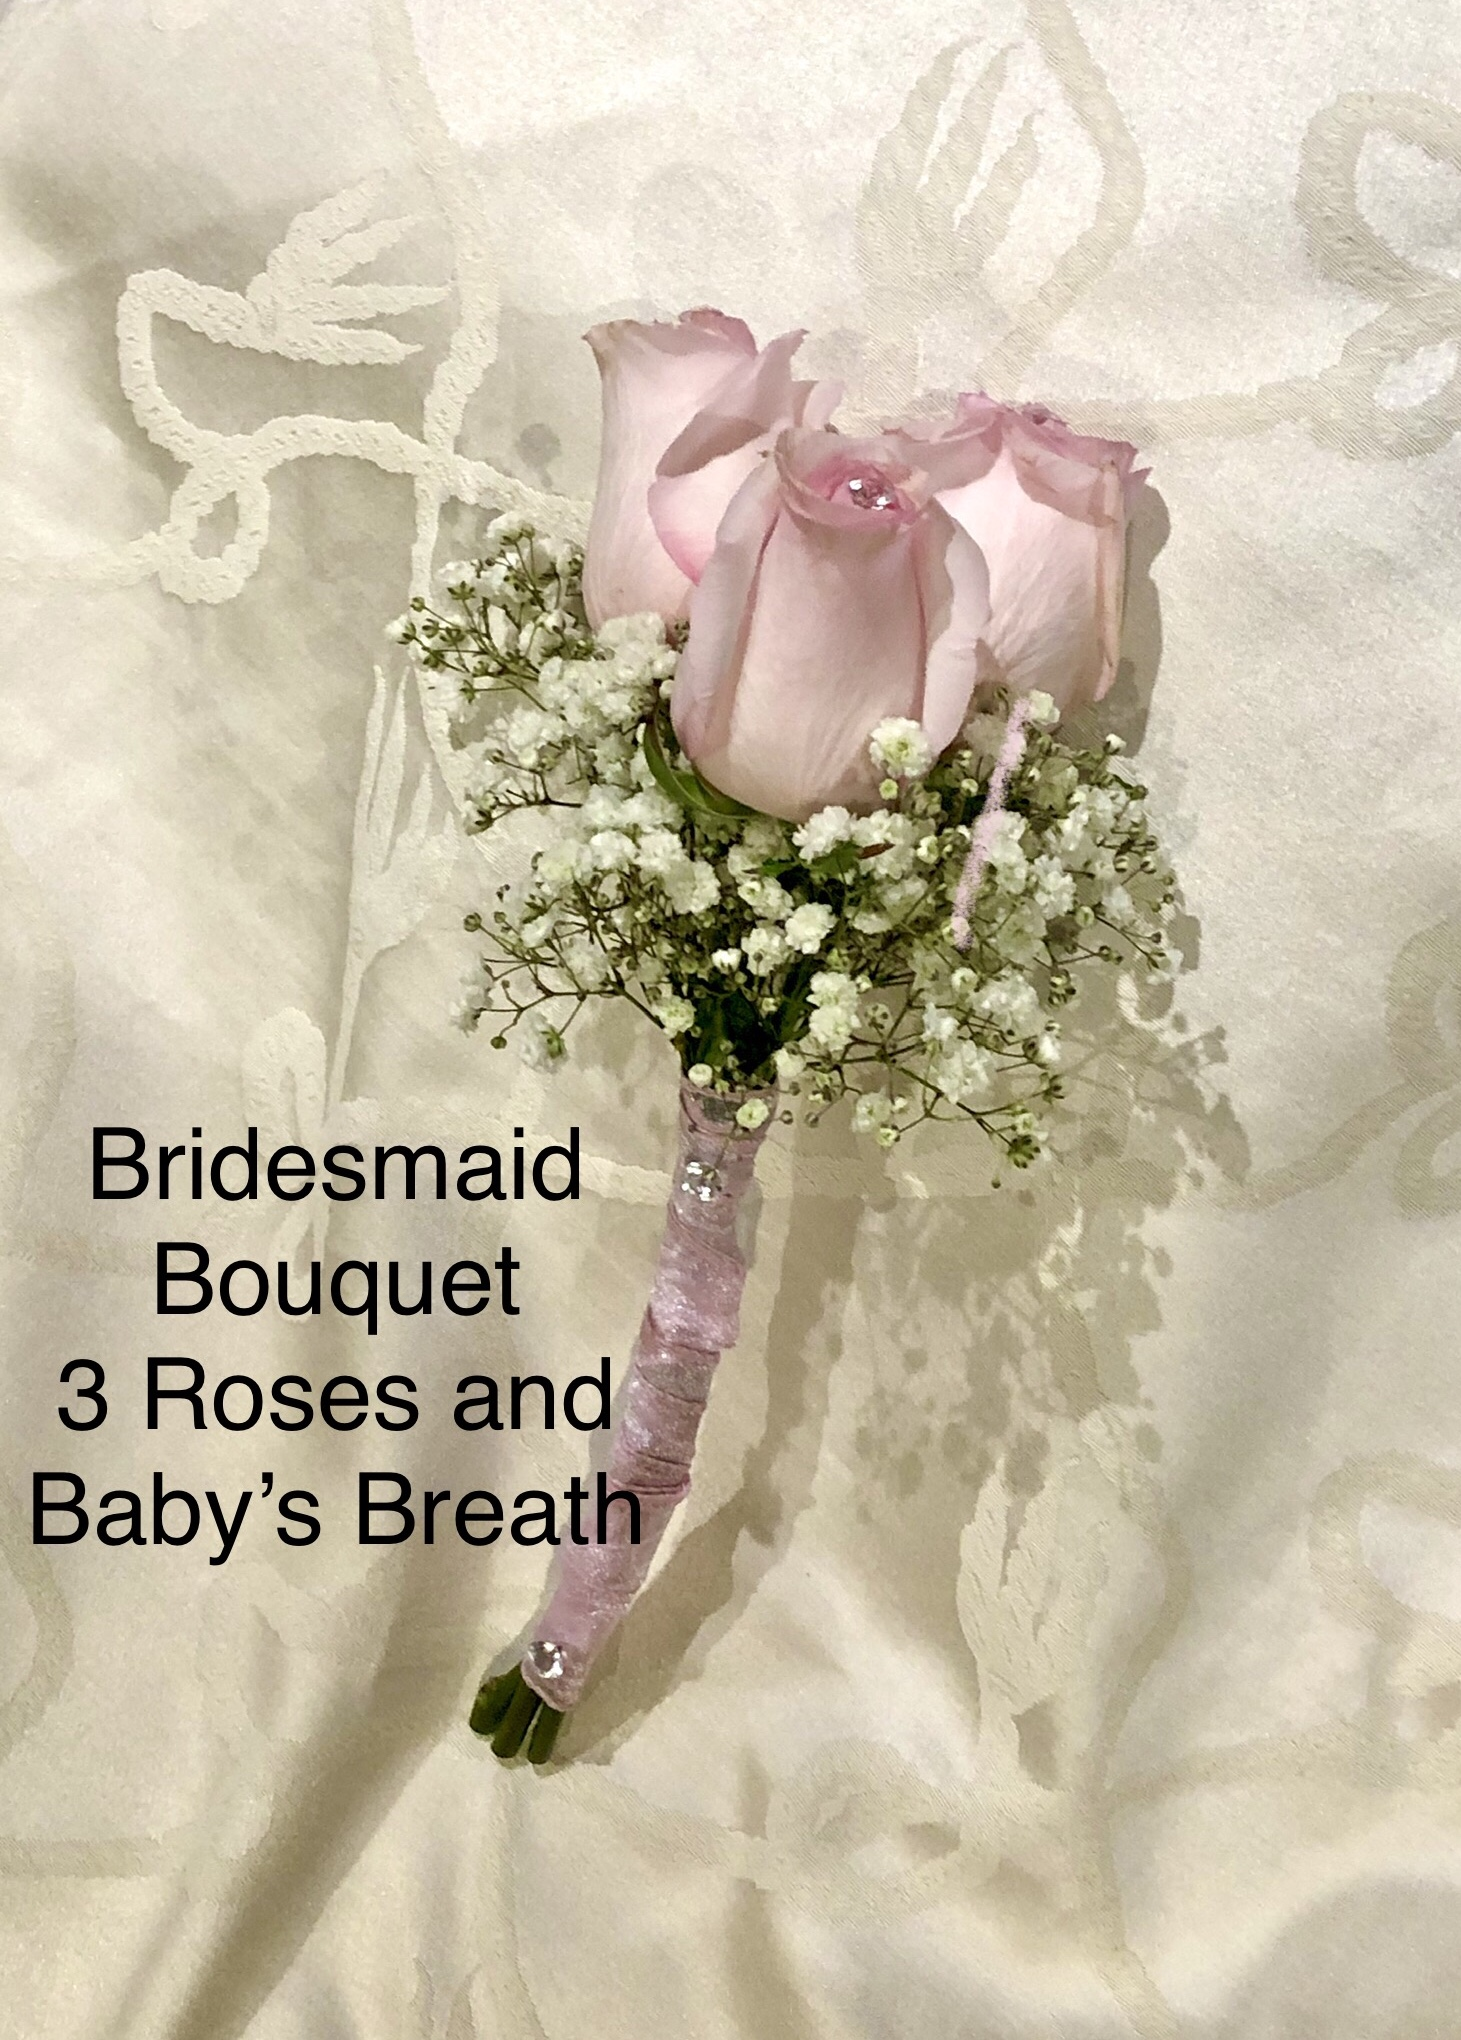 Bridesmaid Bouquet 3 Roses and Babies Breath